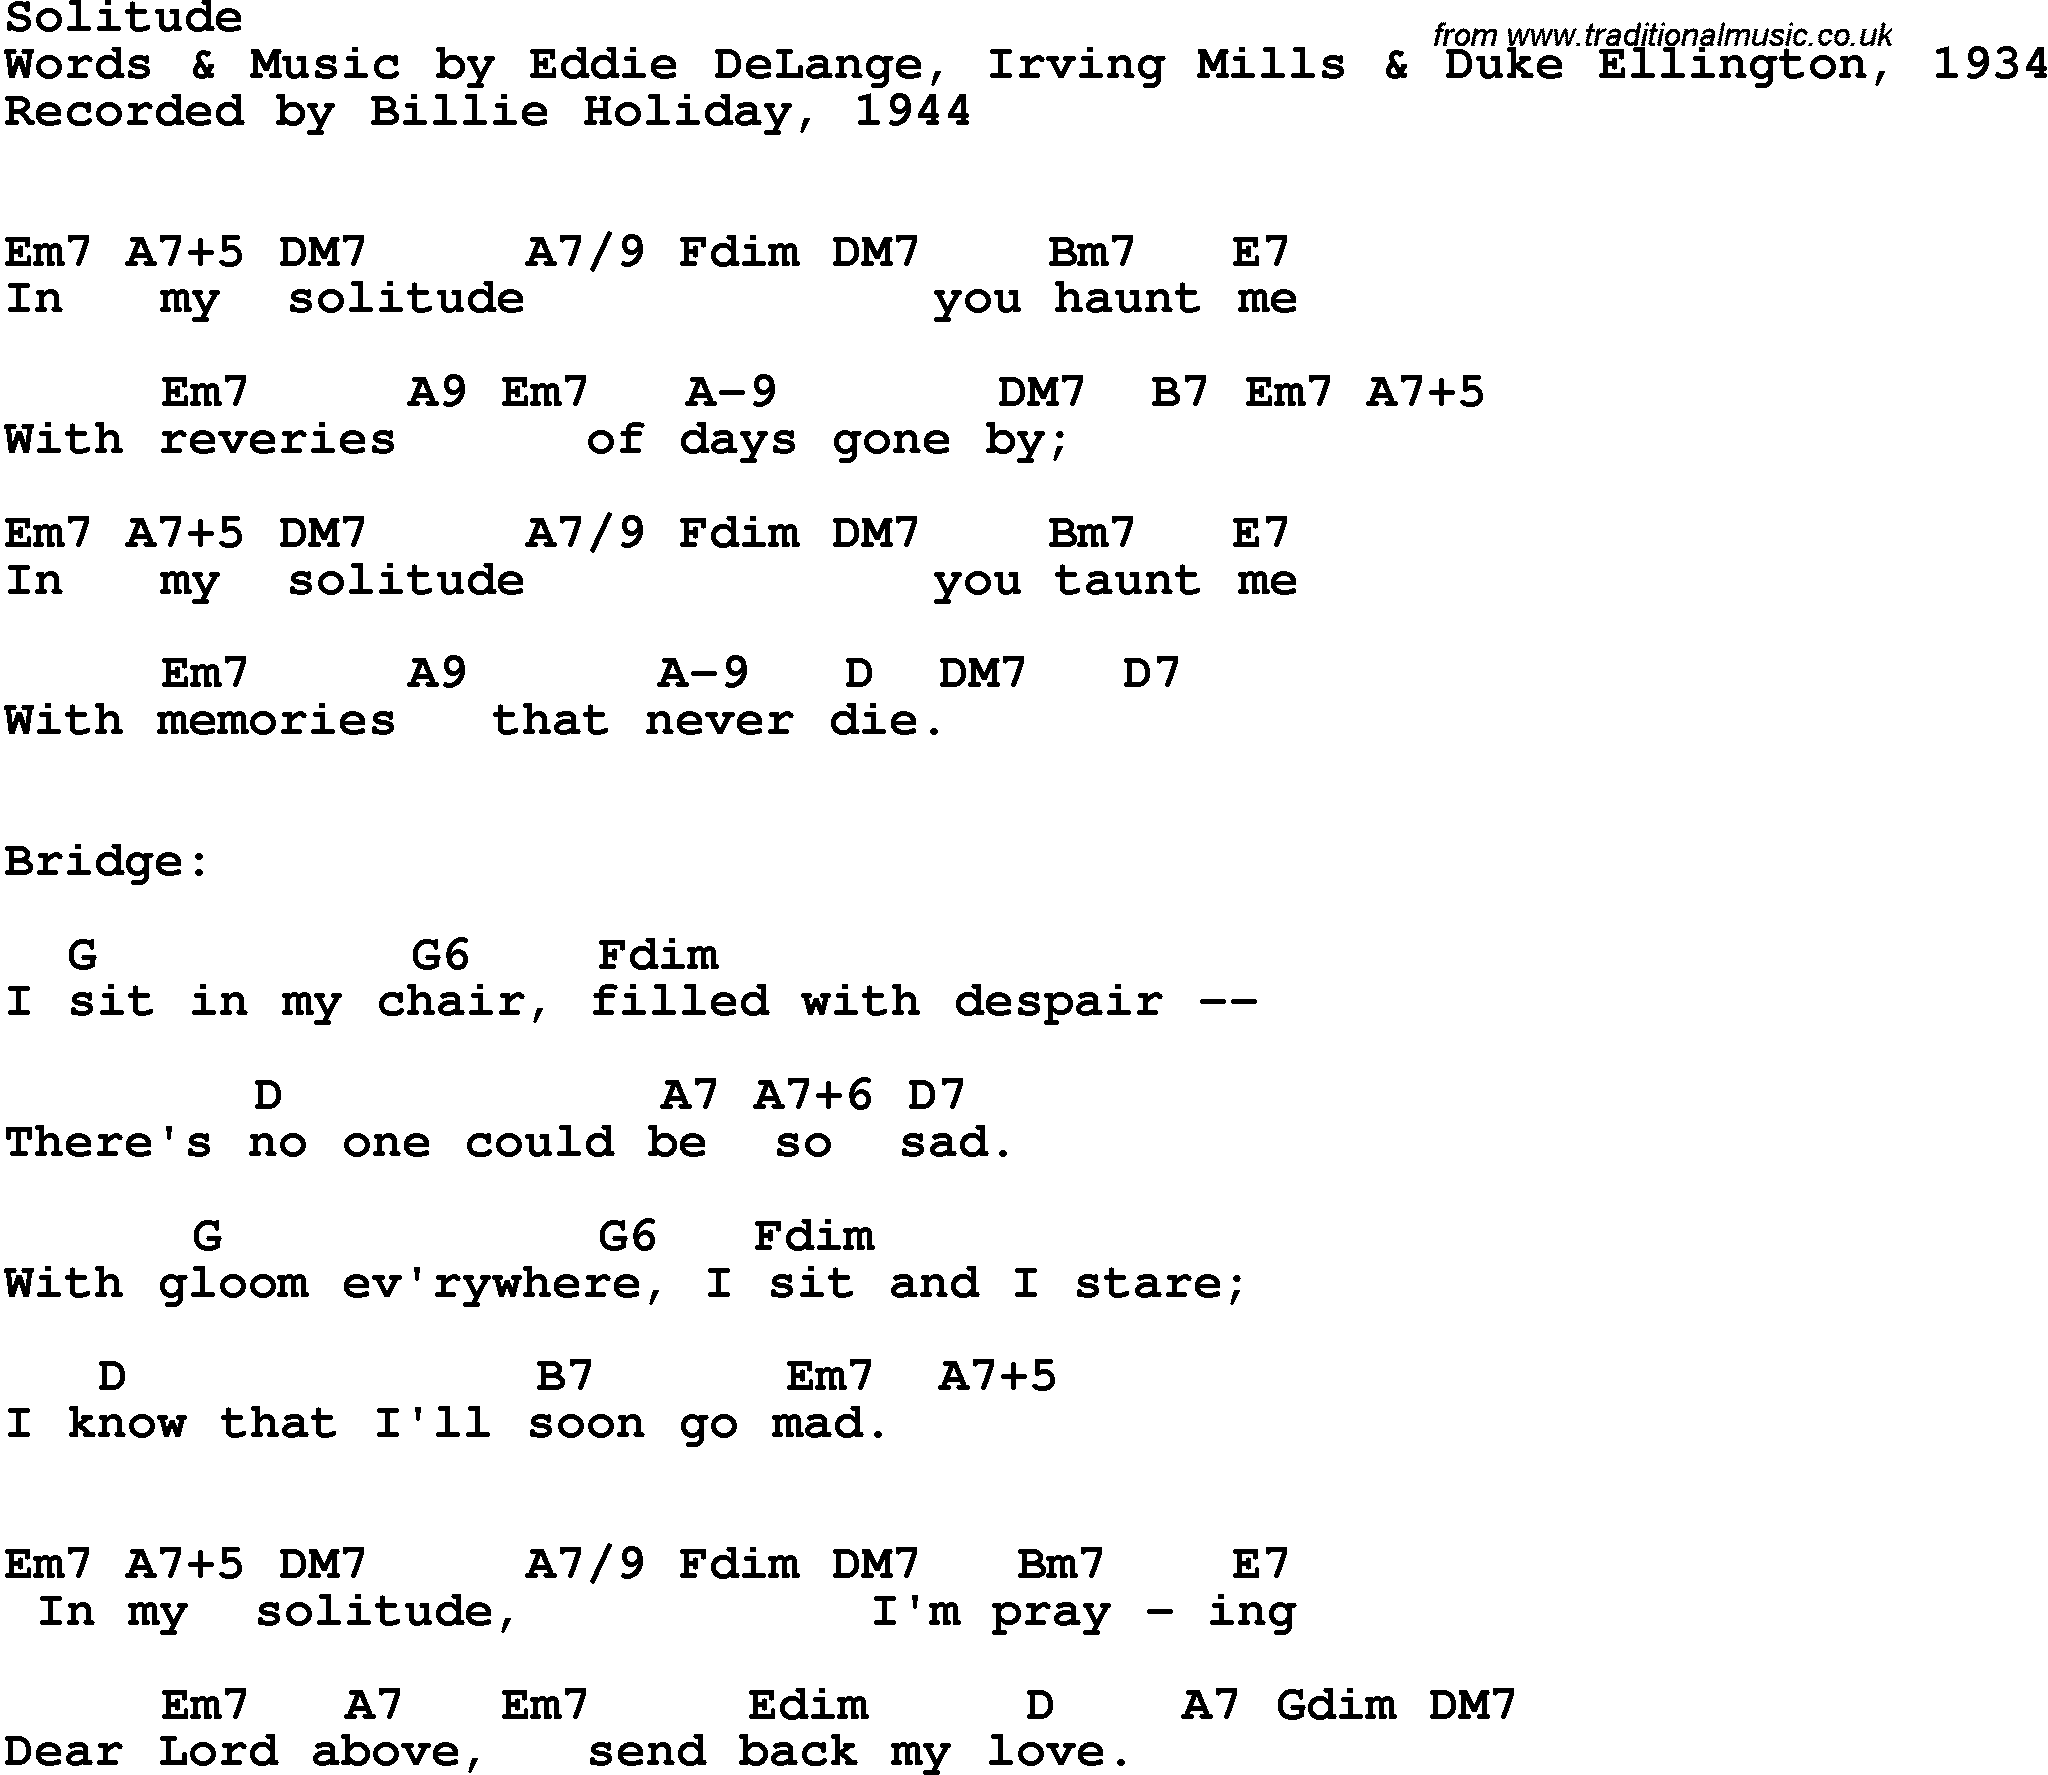 Song Lyrics With Guitar Chords For Solitude Billie Holiday 1944